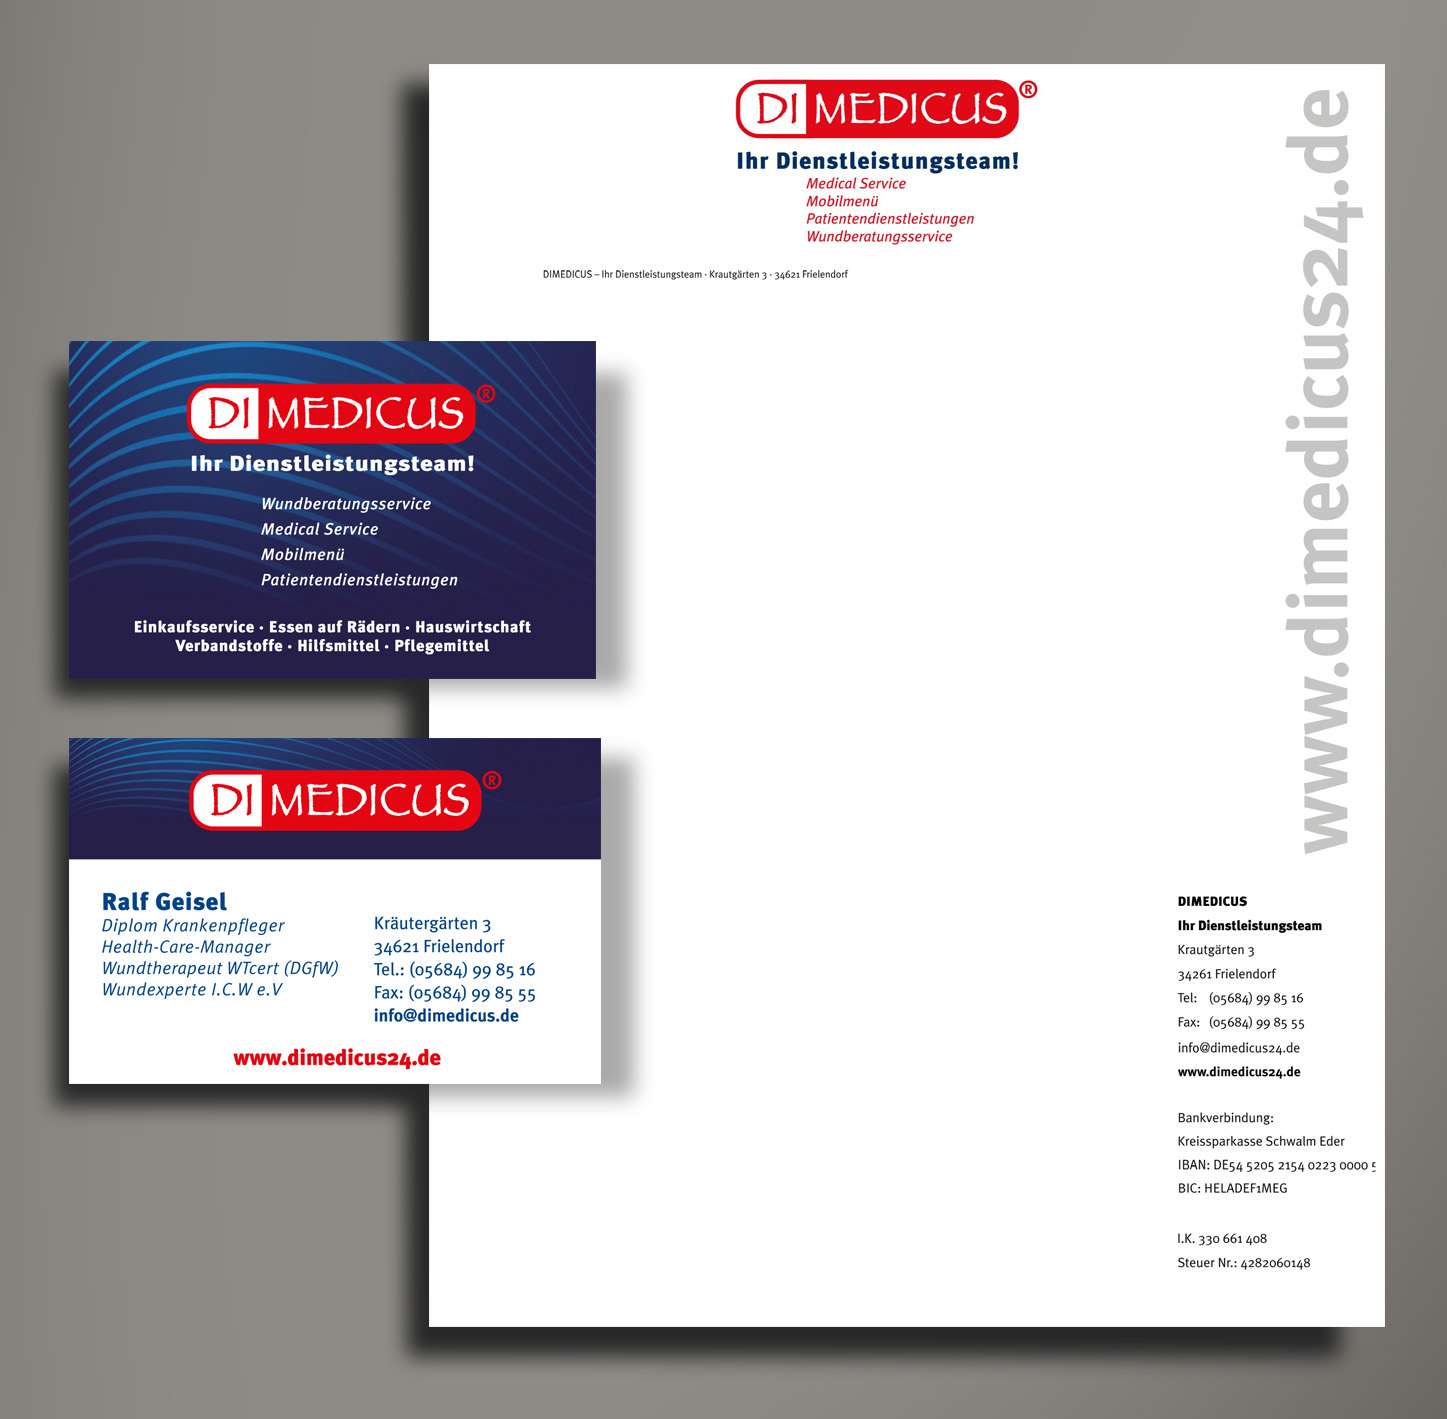 DIMEDICUS Corporate Design